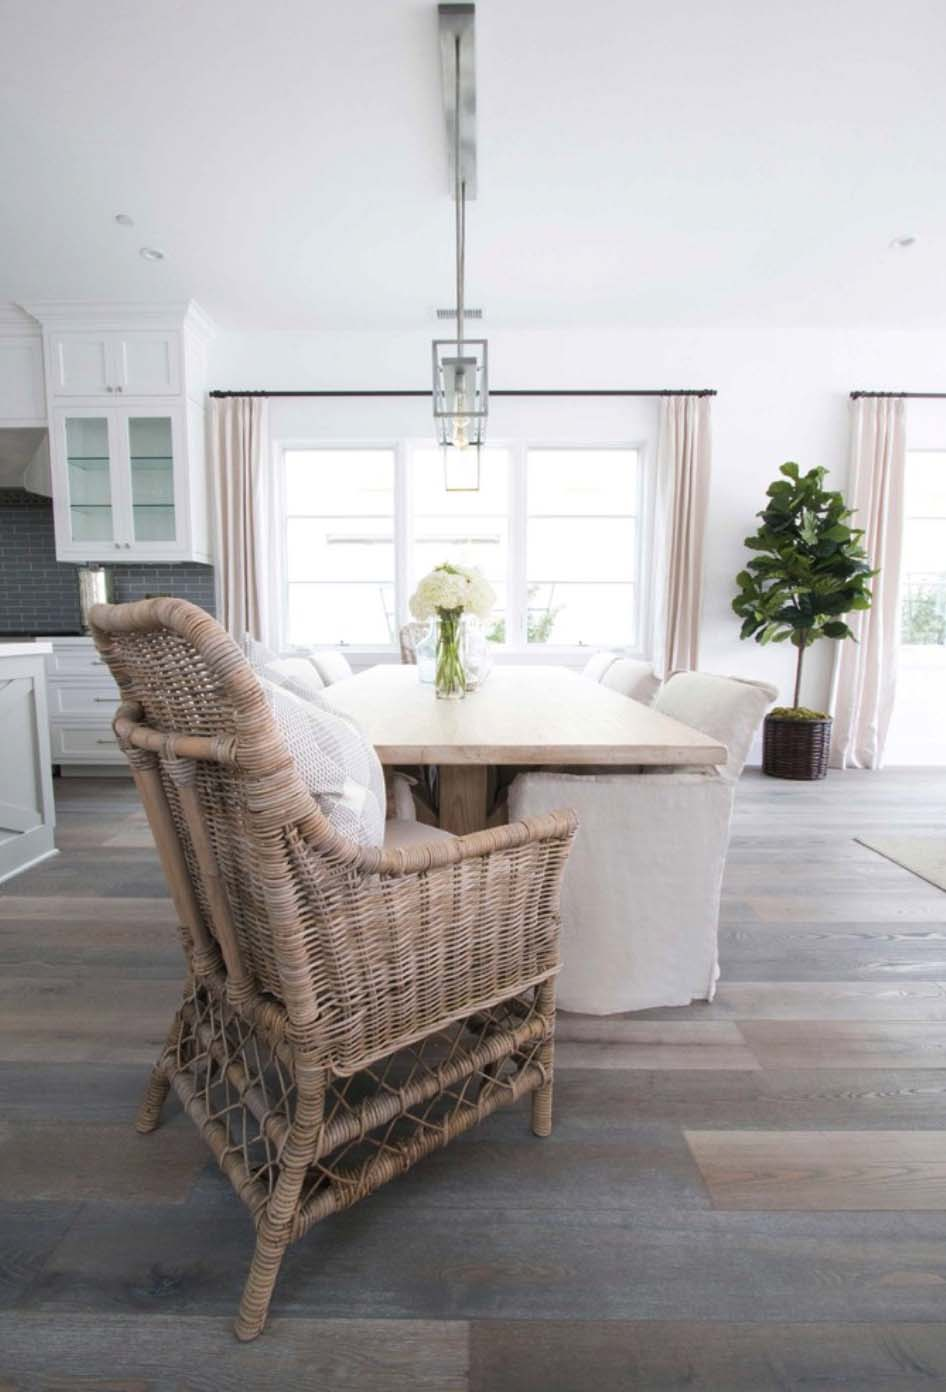 Coastal-Inspired Farmhouse-Blackband Design-18-1 Kindesign